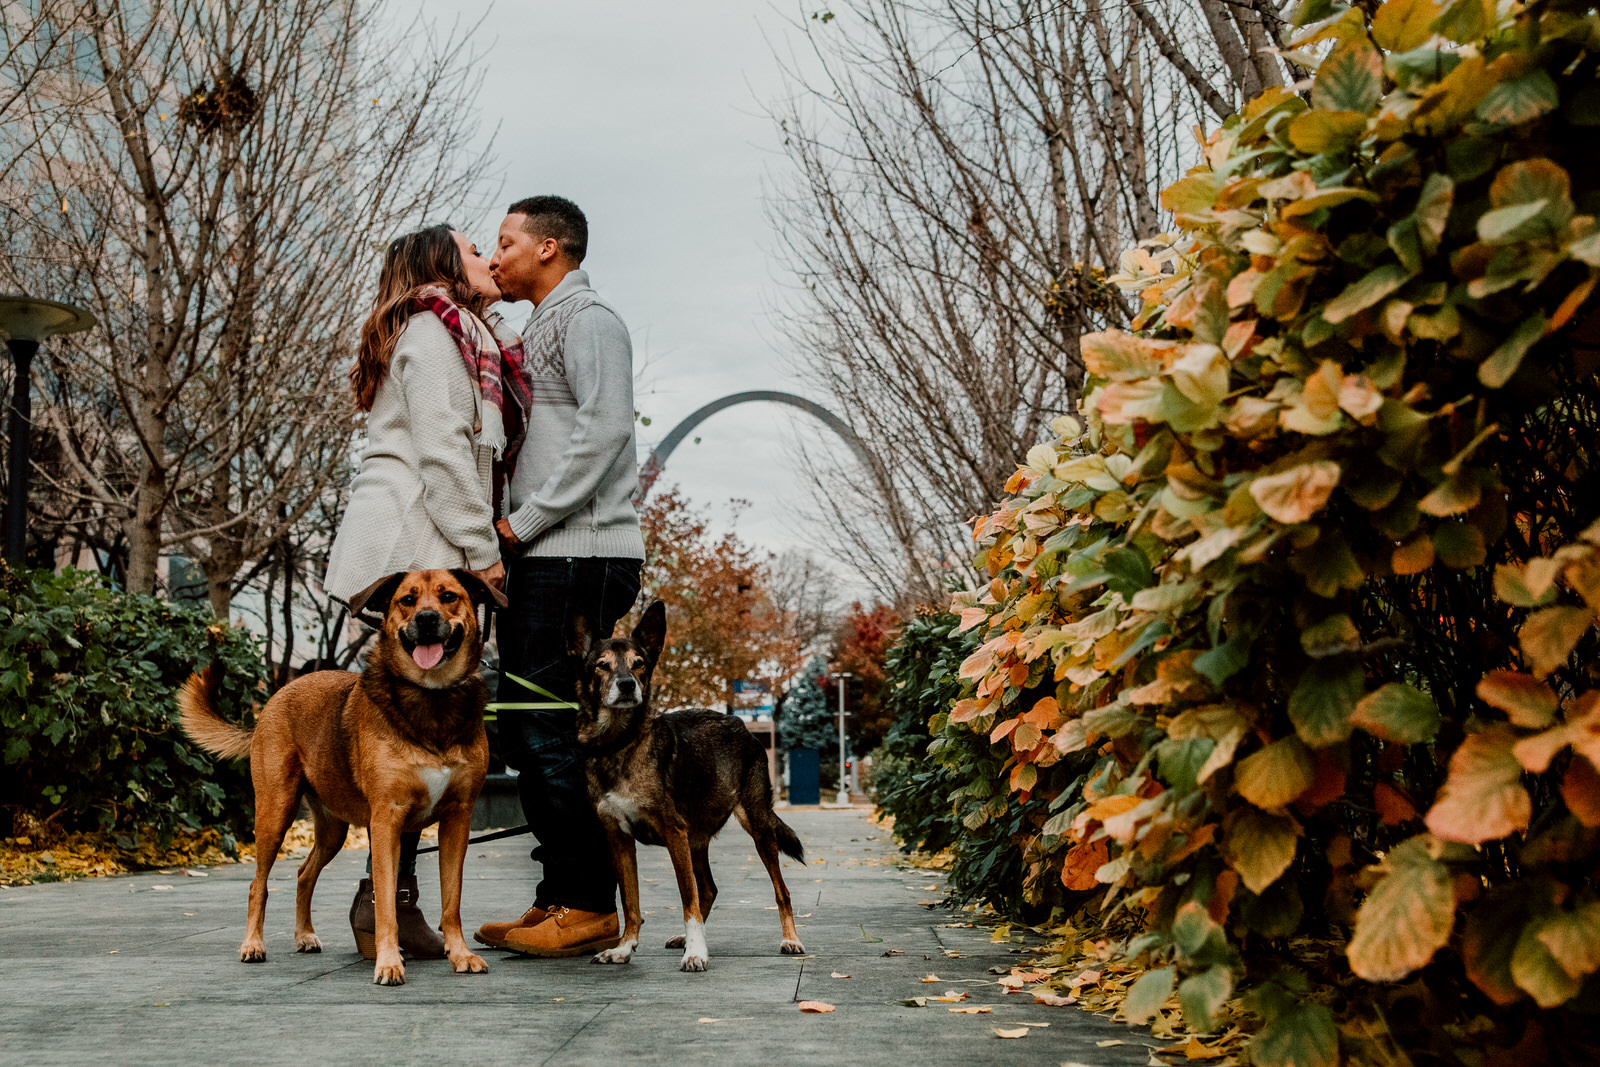 NATASHA-ARRO-ENGAGEMENT-PHOTOGRAPHY-CITY-GARDENS-ST-LOUIS-NORTH-ARROW-CREATIVE-5SR_2656-0055